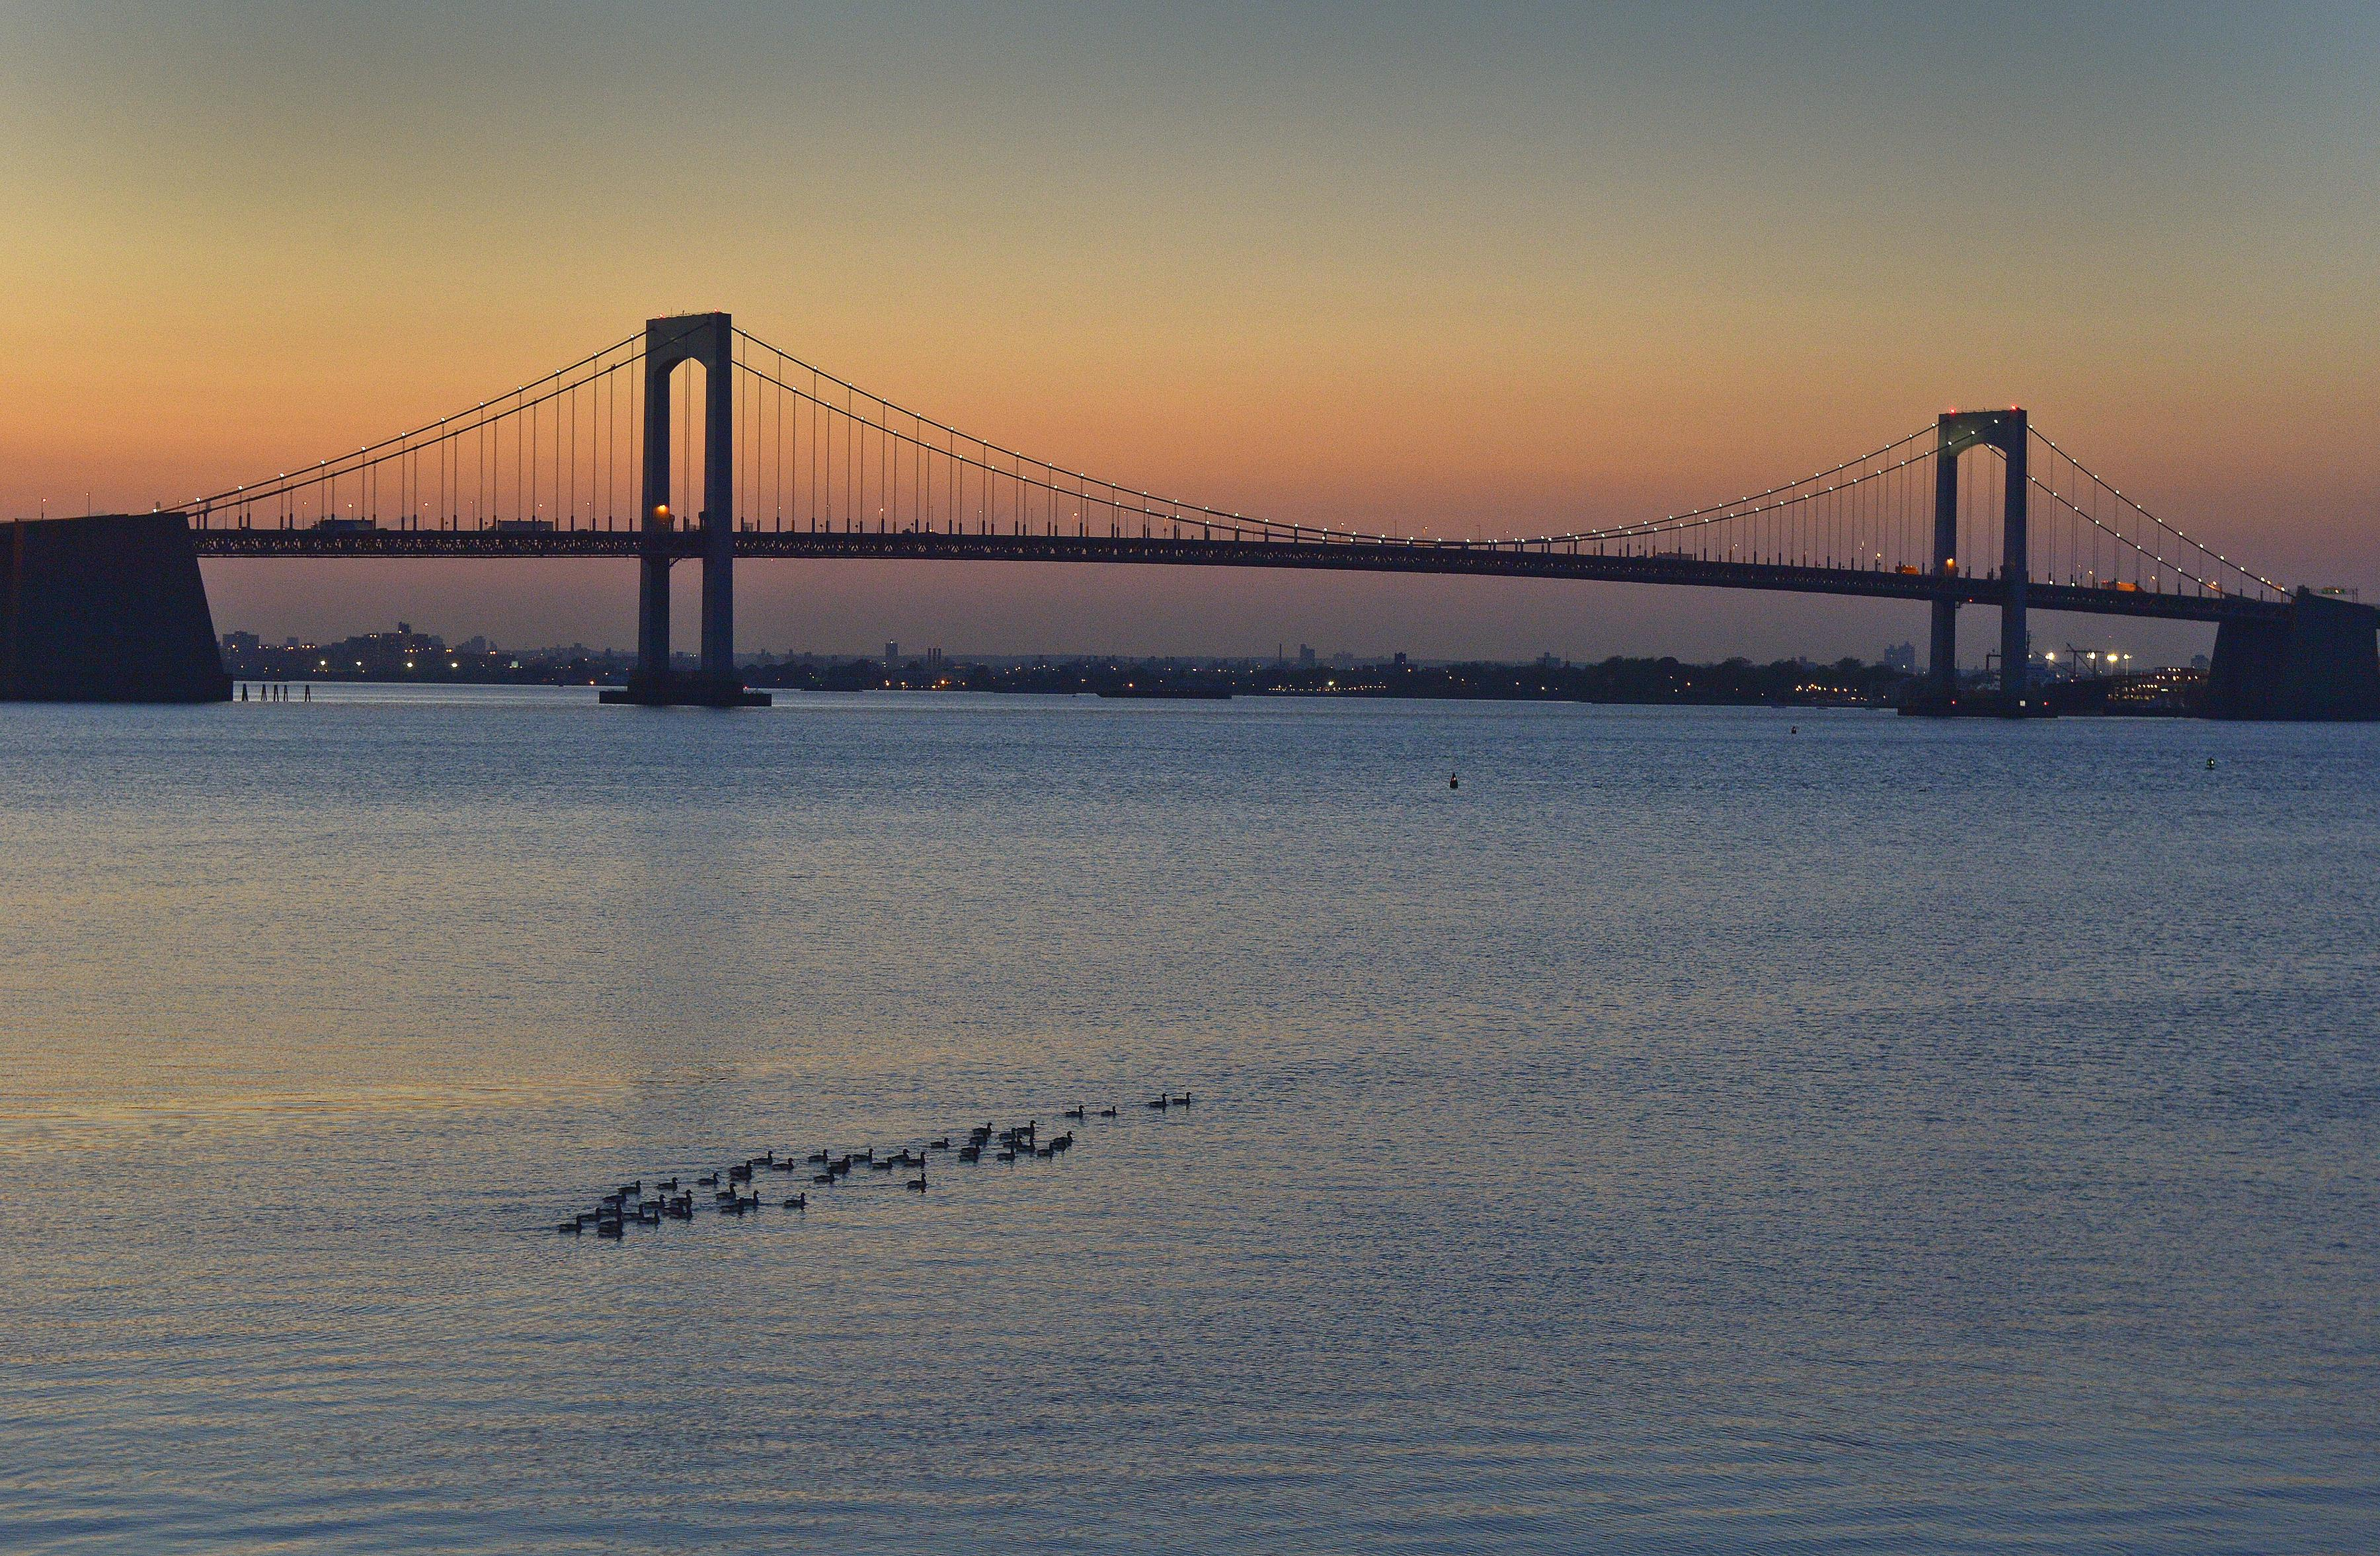 A bridge stretches across a body of water with a sunset visible in the background and waterfowl in the foreground.